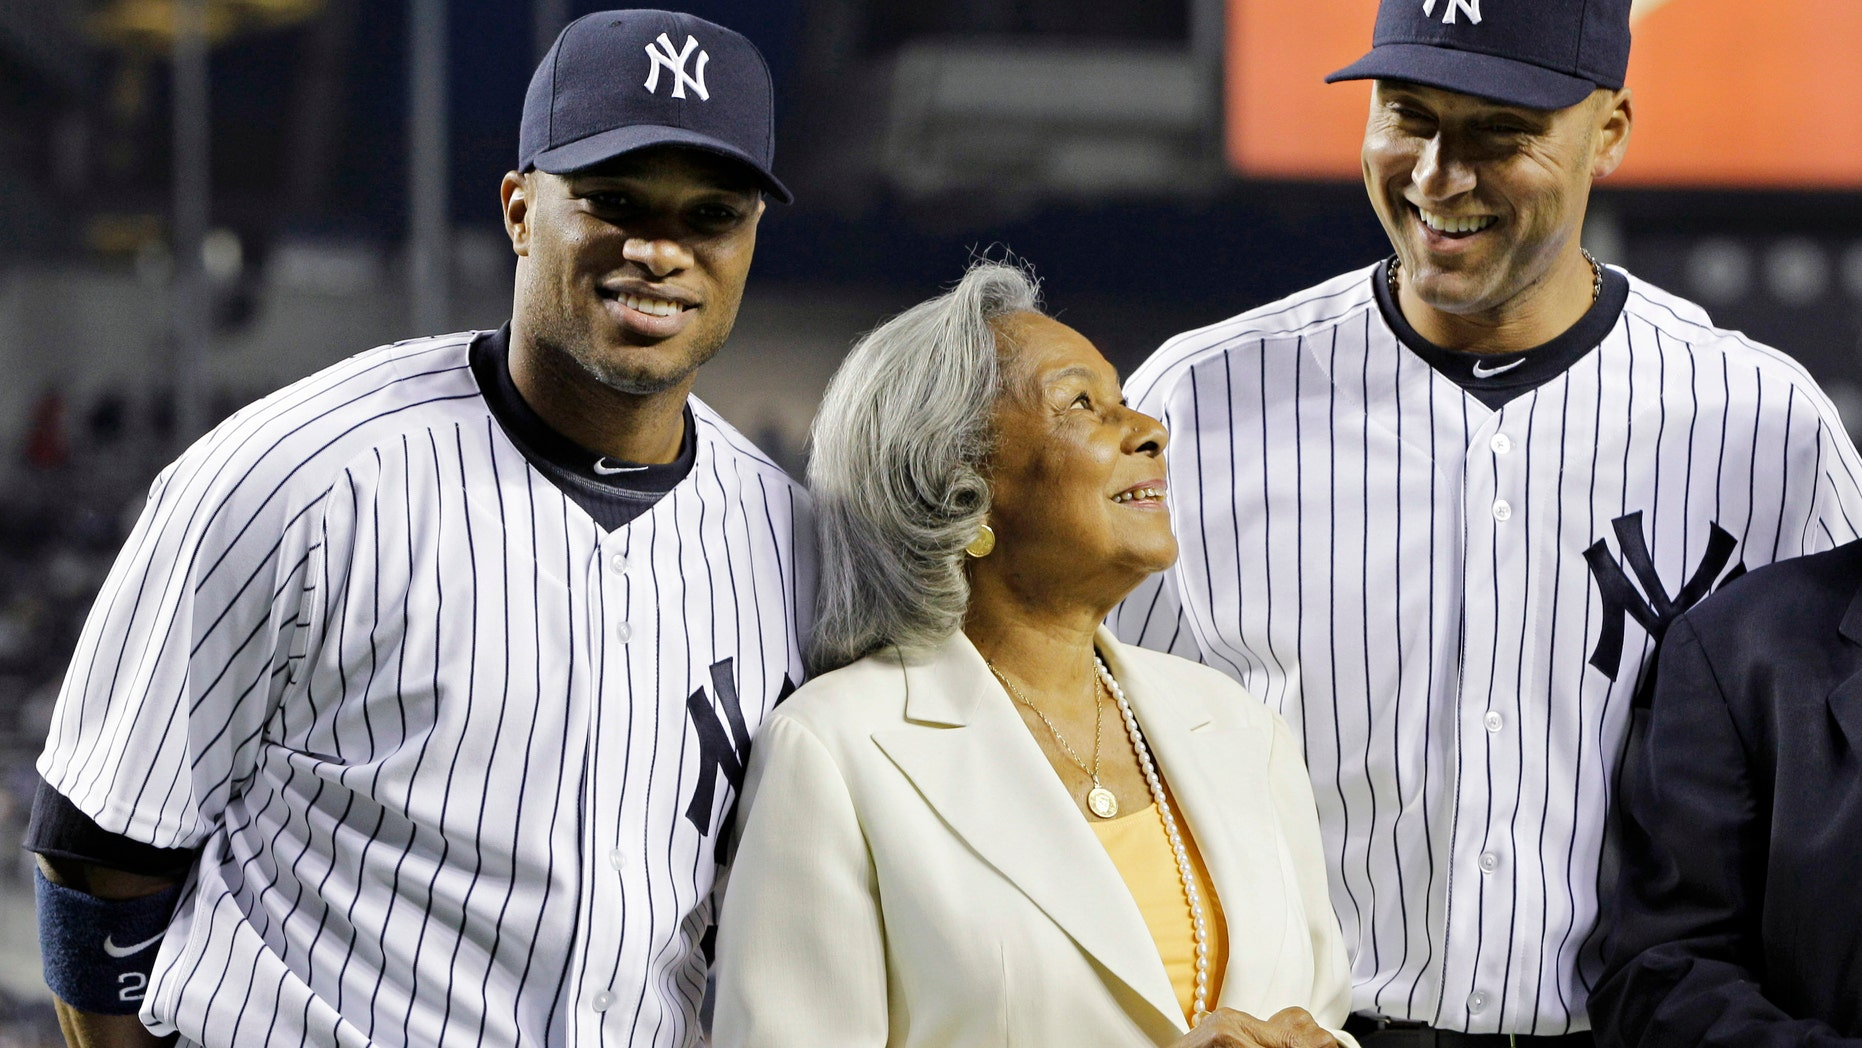 New York Yankees second baseman Robinson Cano, left, and shortstop Derek Jeter join Rachel Robinon, widow of Jackie Robinson, on the field prior to the Yankees' baseball game against the Los Angeles Angels on Jackie Robinson Day at Yankee Stadium in New York, Sunday, April 15, 2012. (AP Photo/Kathy Willens)